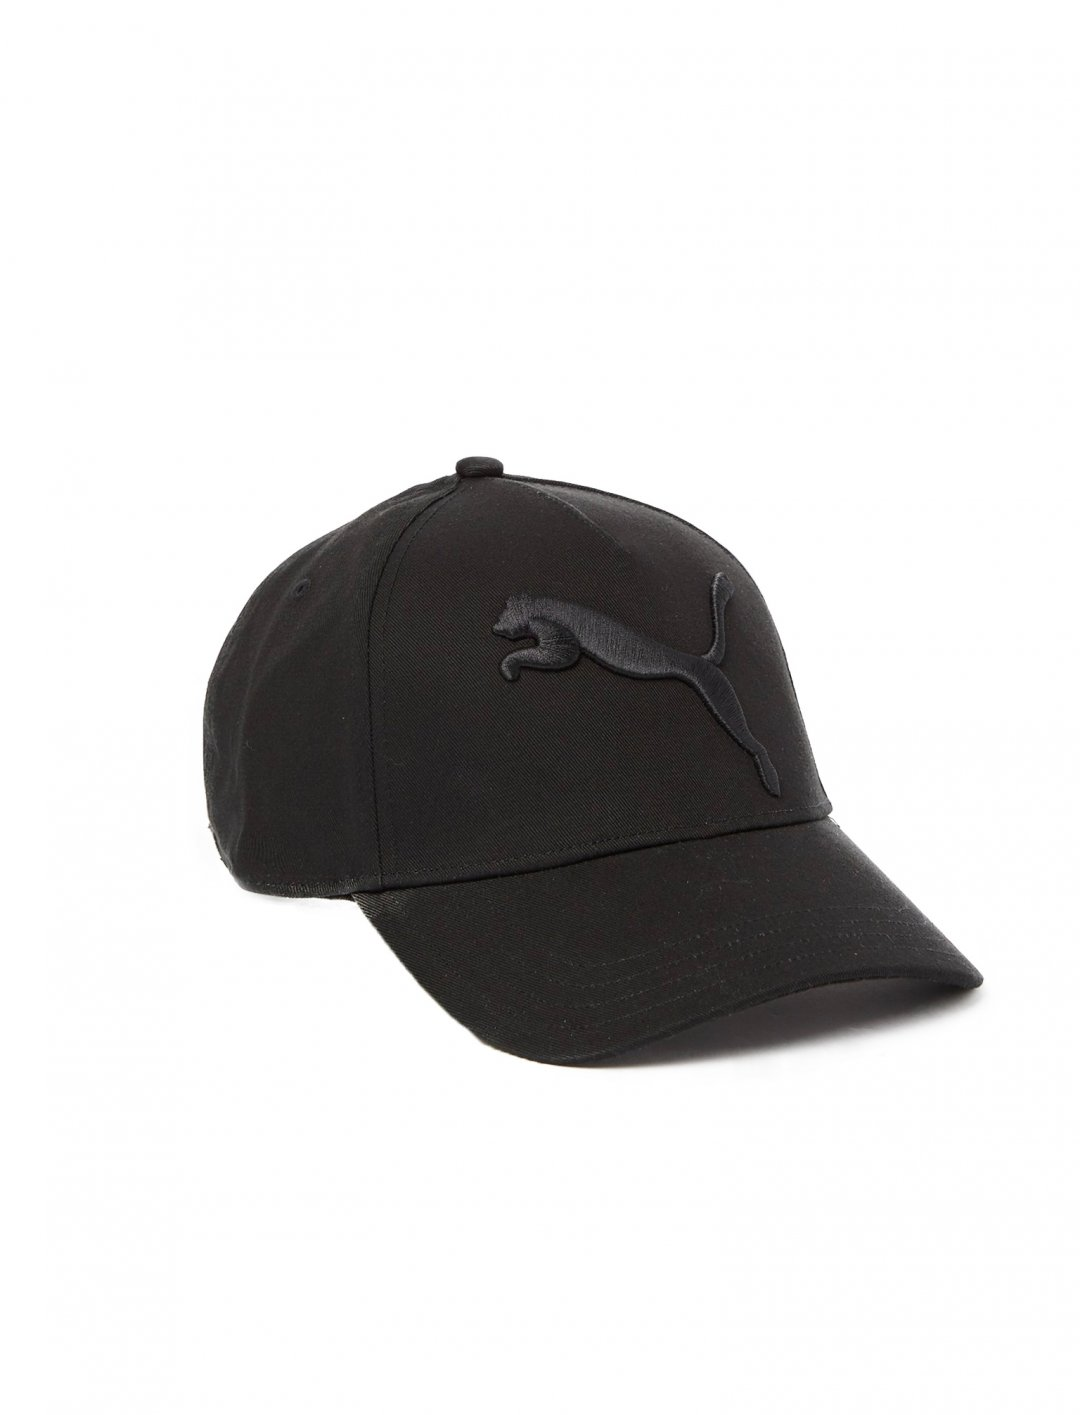 "Puma Cap {""id"":16,""product_section_id"":1,""name"":""Accessories"",""order"":15} The Kooples x PUMA"